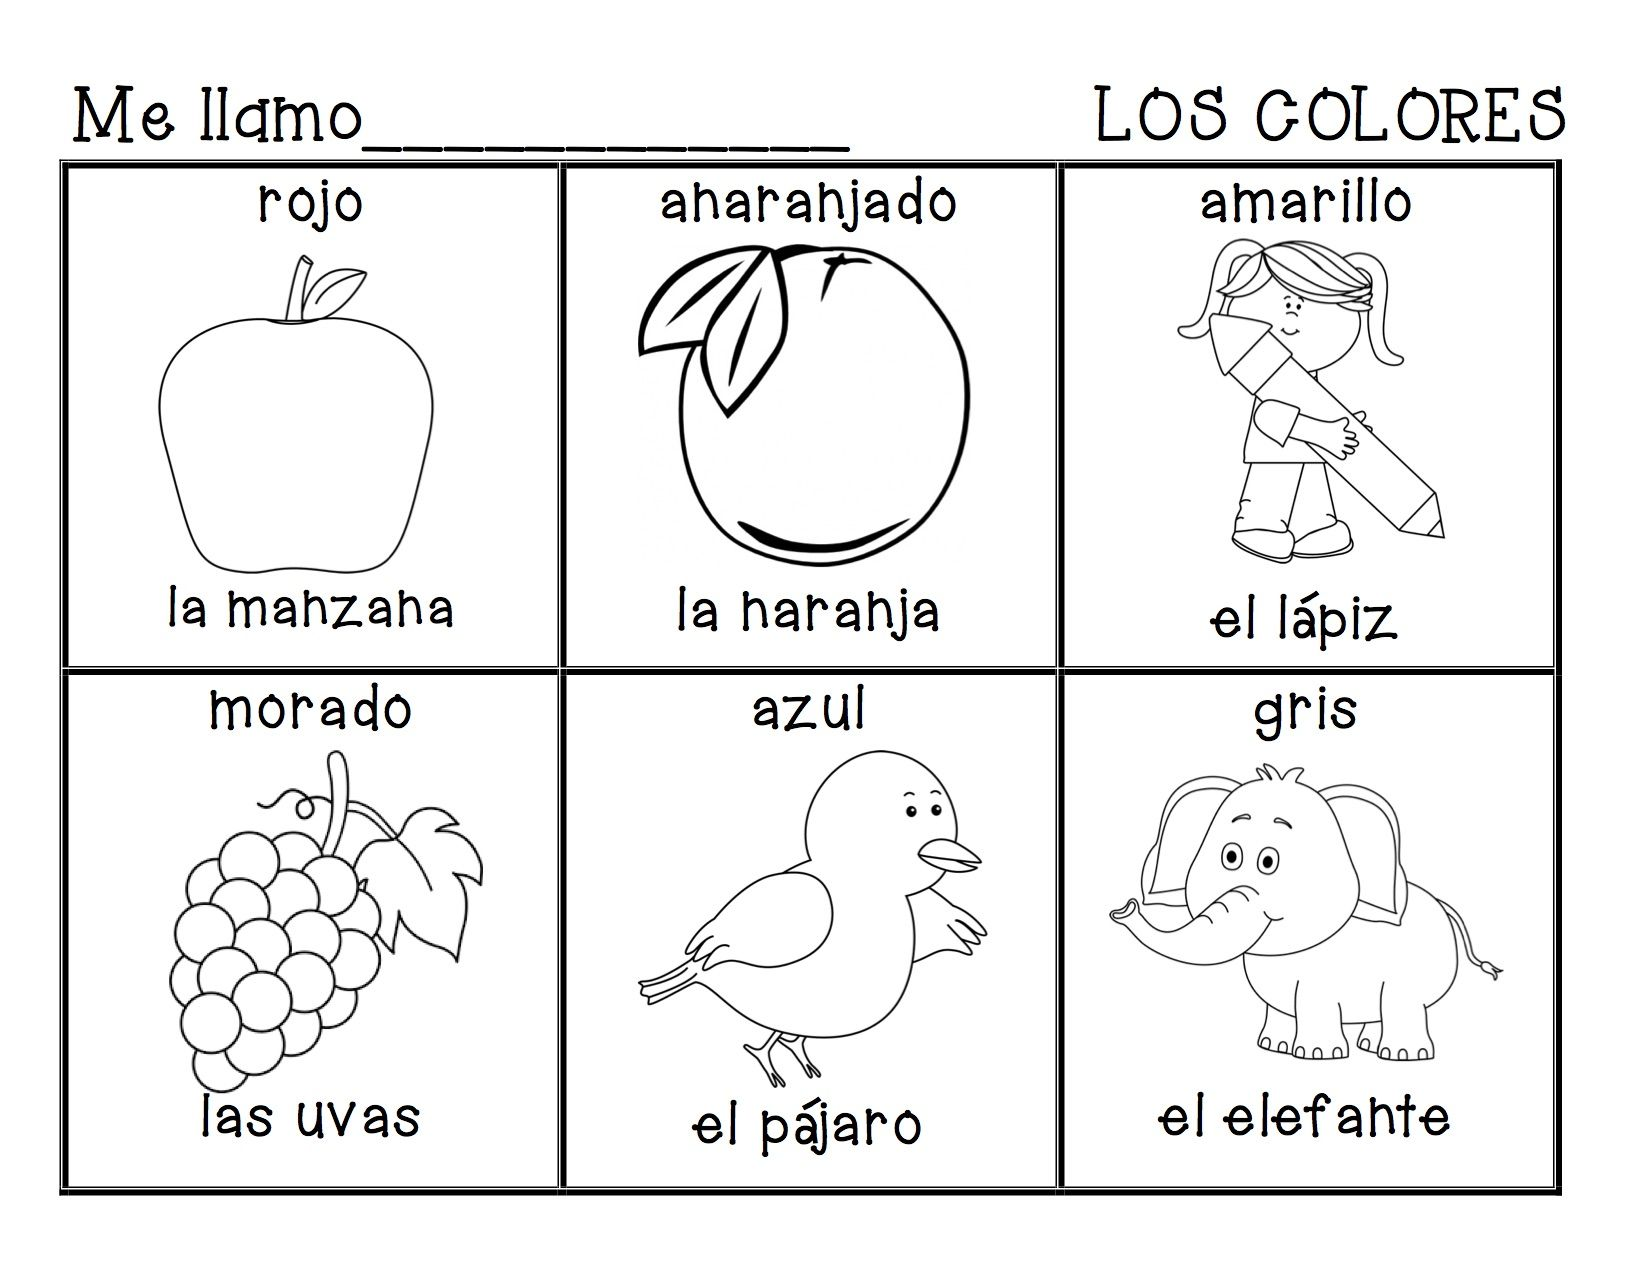 Spanish Coloring Sheet For A Paintbrush For Paco By Tracey Kyle